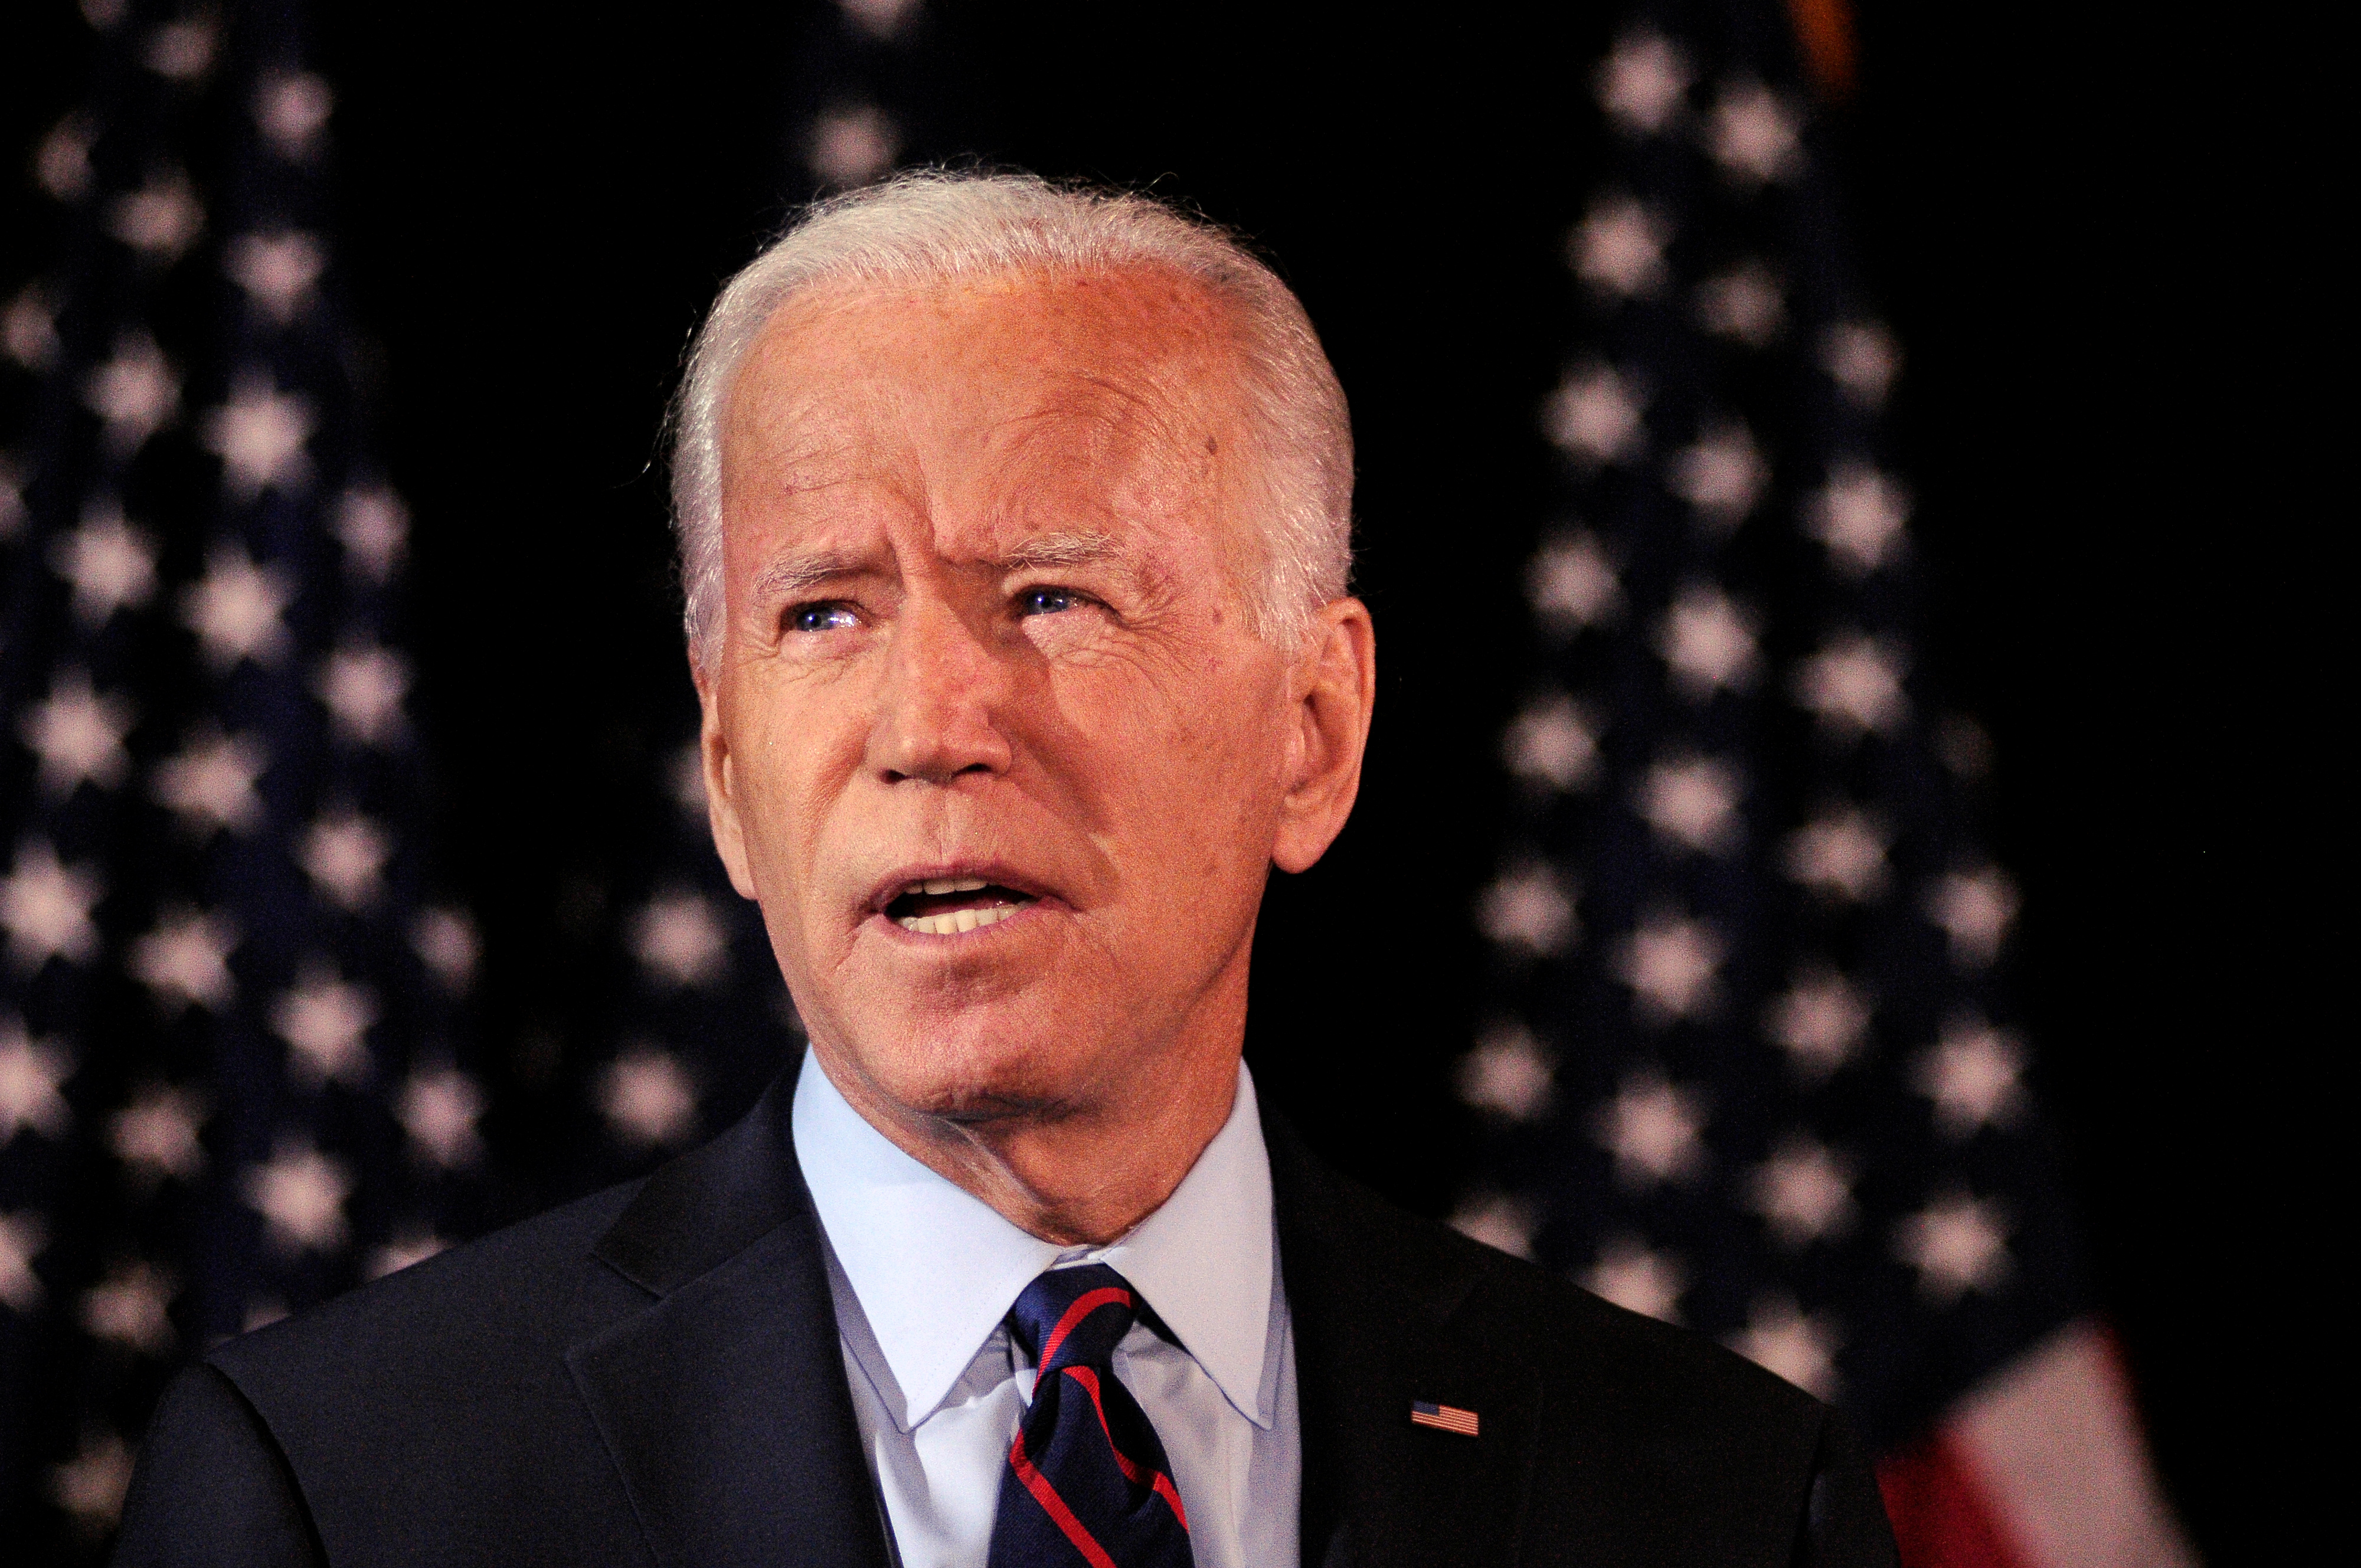 Former U.S. Vice President and Democratic presidential hopeful Joe Biden makes a statement during an event in Wilmington, Delaware, Sept. 24, 2019.  (Photo: Bastiaan Slabbers/Reuters)